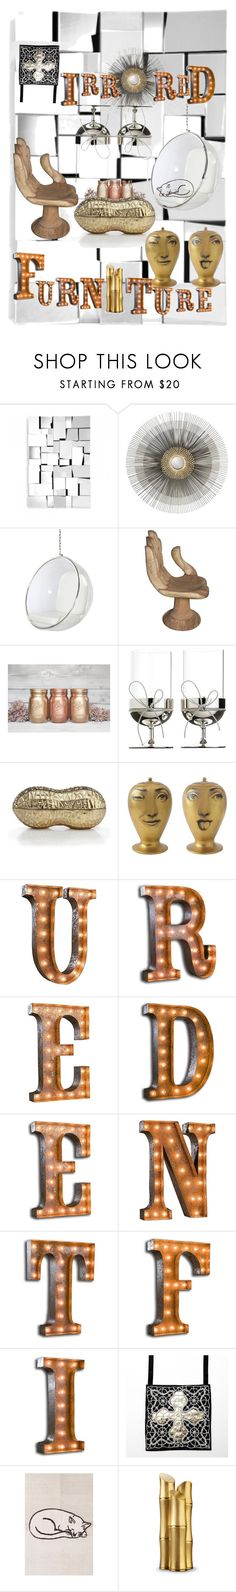 """""""Mirrored dream home"""" by natipureidea ❤ liked on Polyvore featuring interior, interiors, interior design, home, home decor, interior decorating, Zuo, Crate and Barrel, Wedgwood and Fornasetti"""